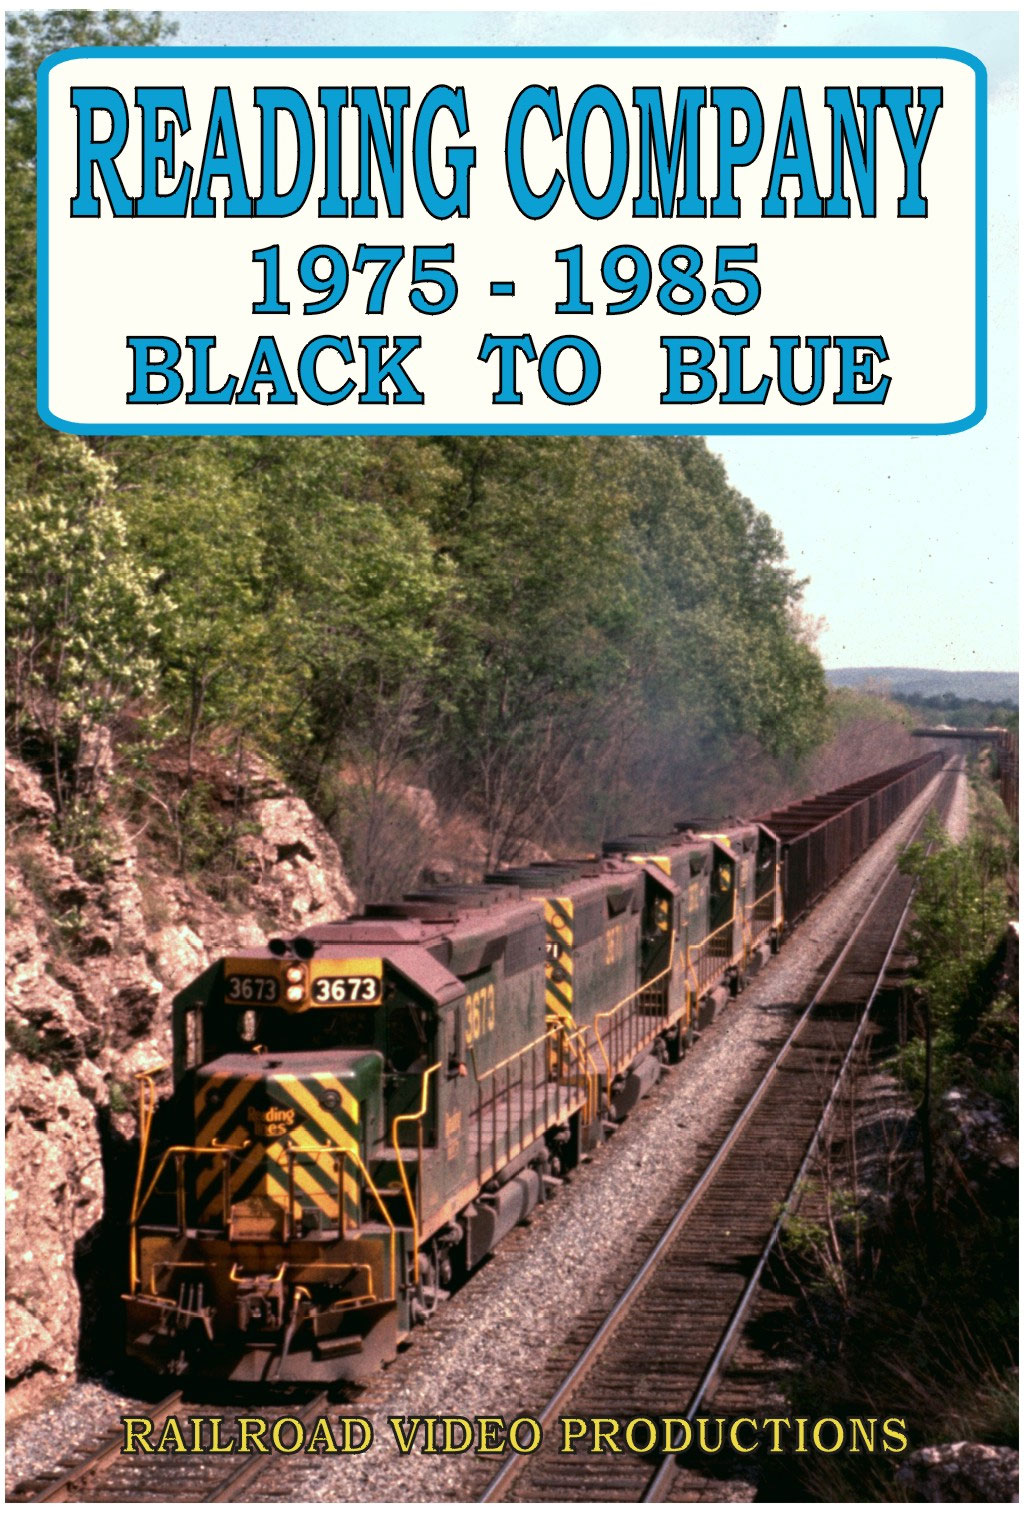 Reading Company 1975-1985 Black to Blue DVD Railroad Video Productions RVP219D